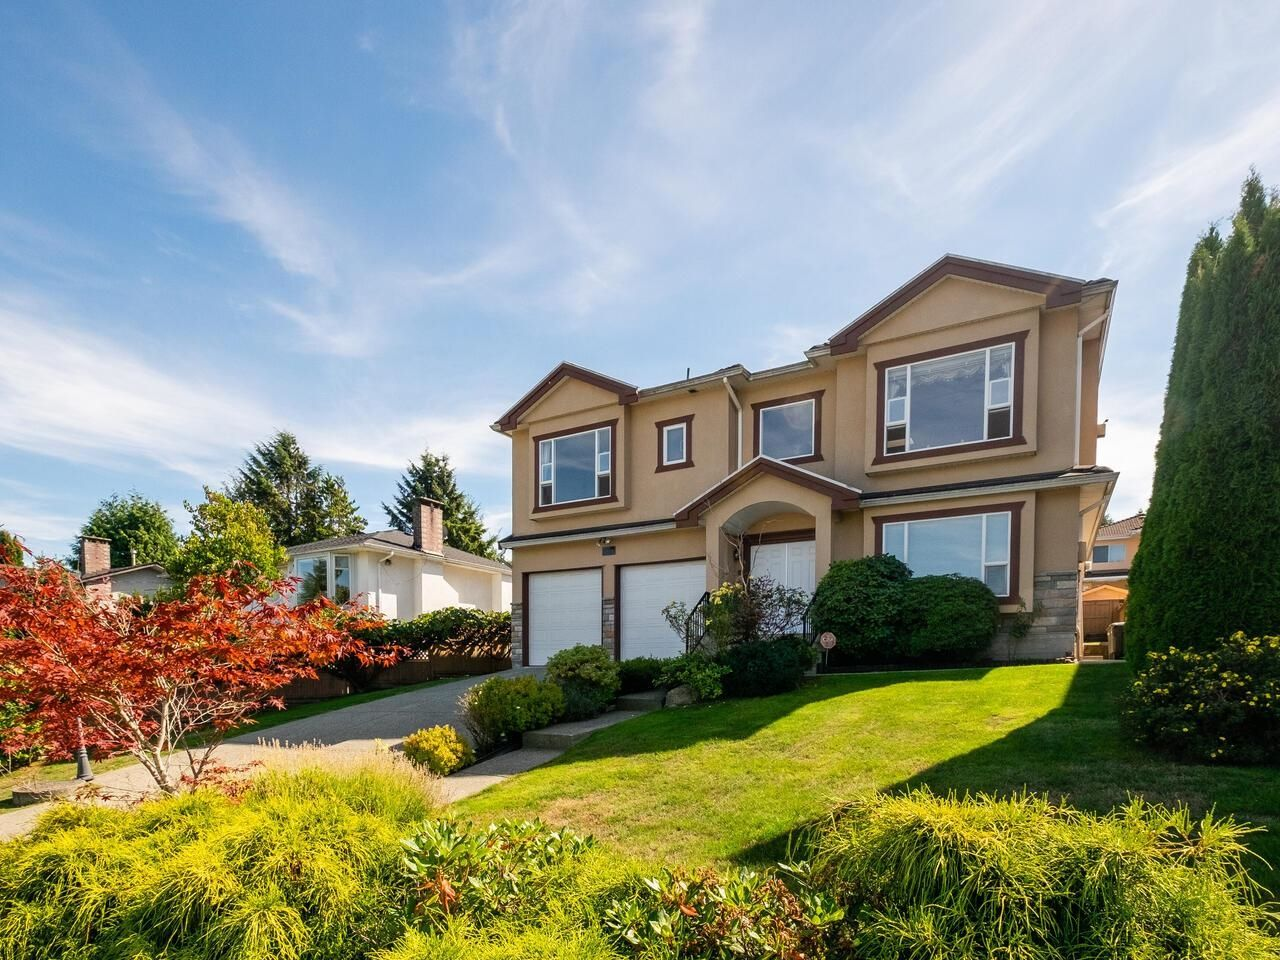 Main Photo: 5758 BURNS Place in Burnaby: Upper Deer Lake House for sale (Burnaby South)  : MLS®# R2618055